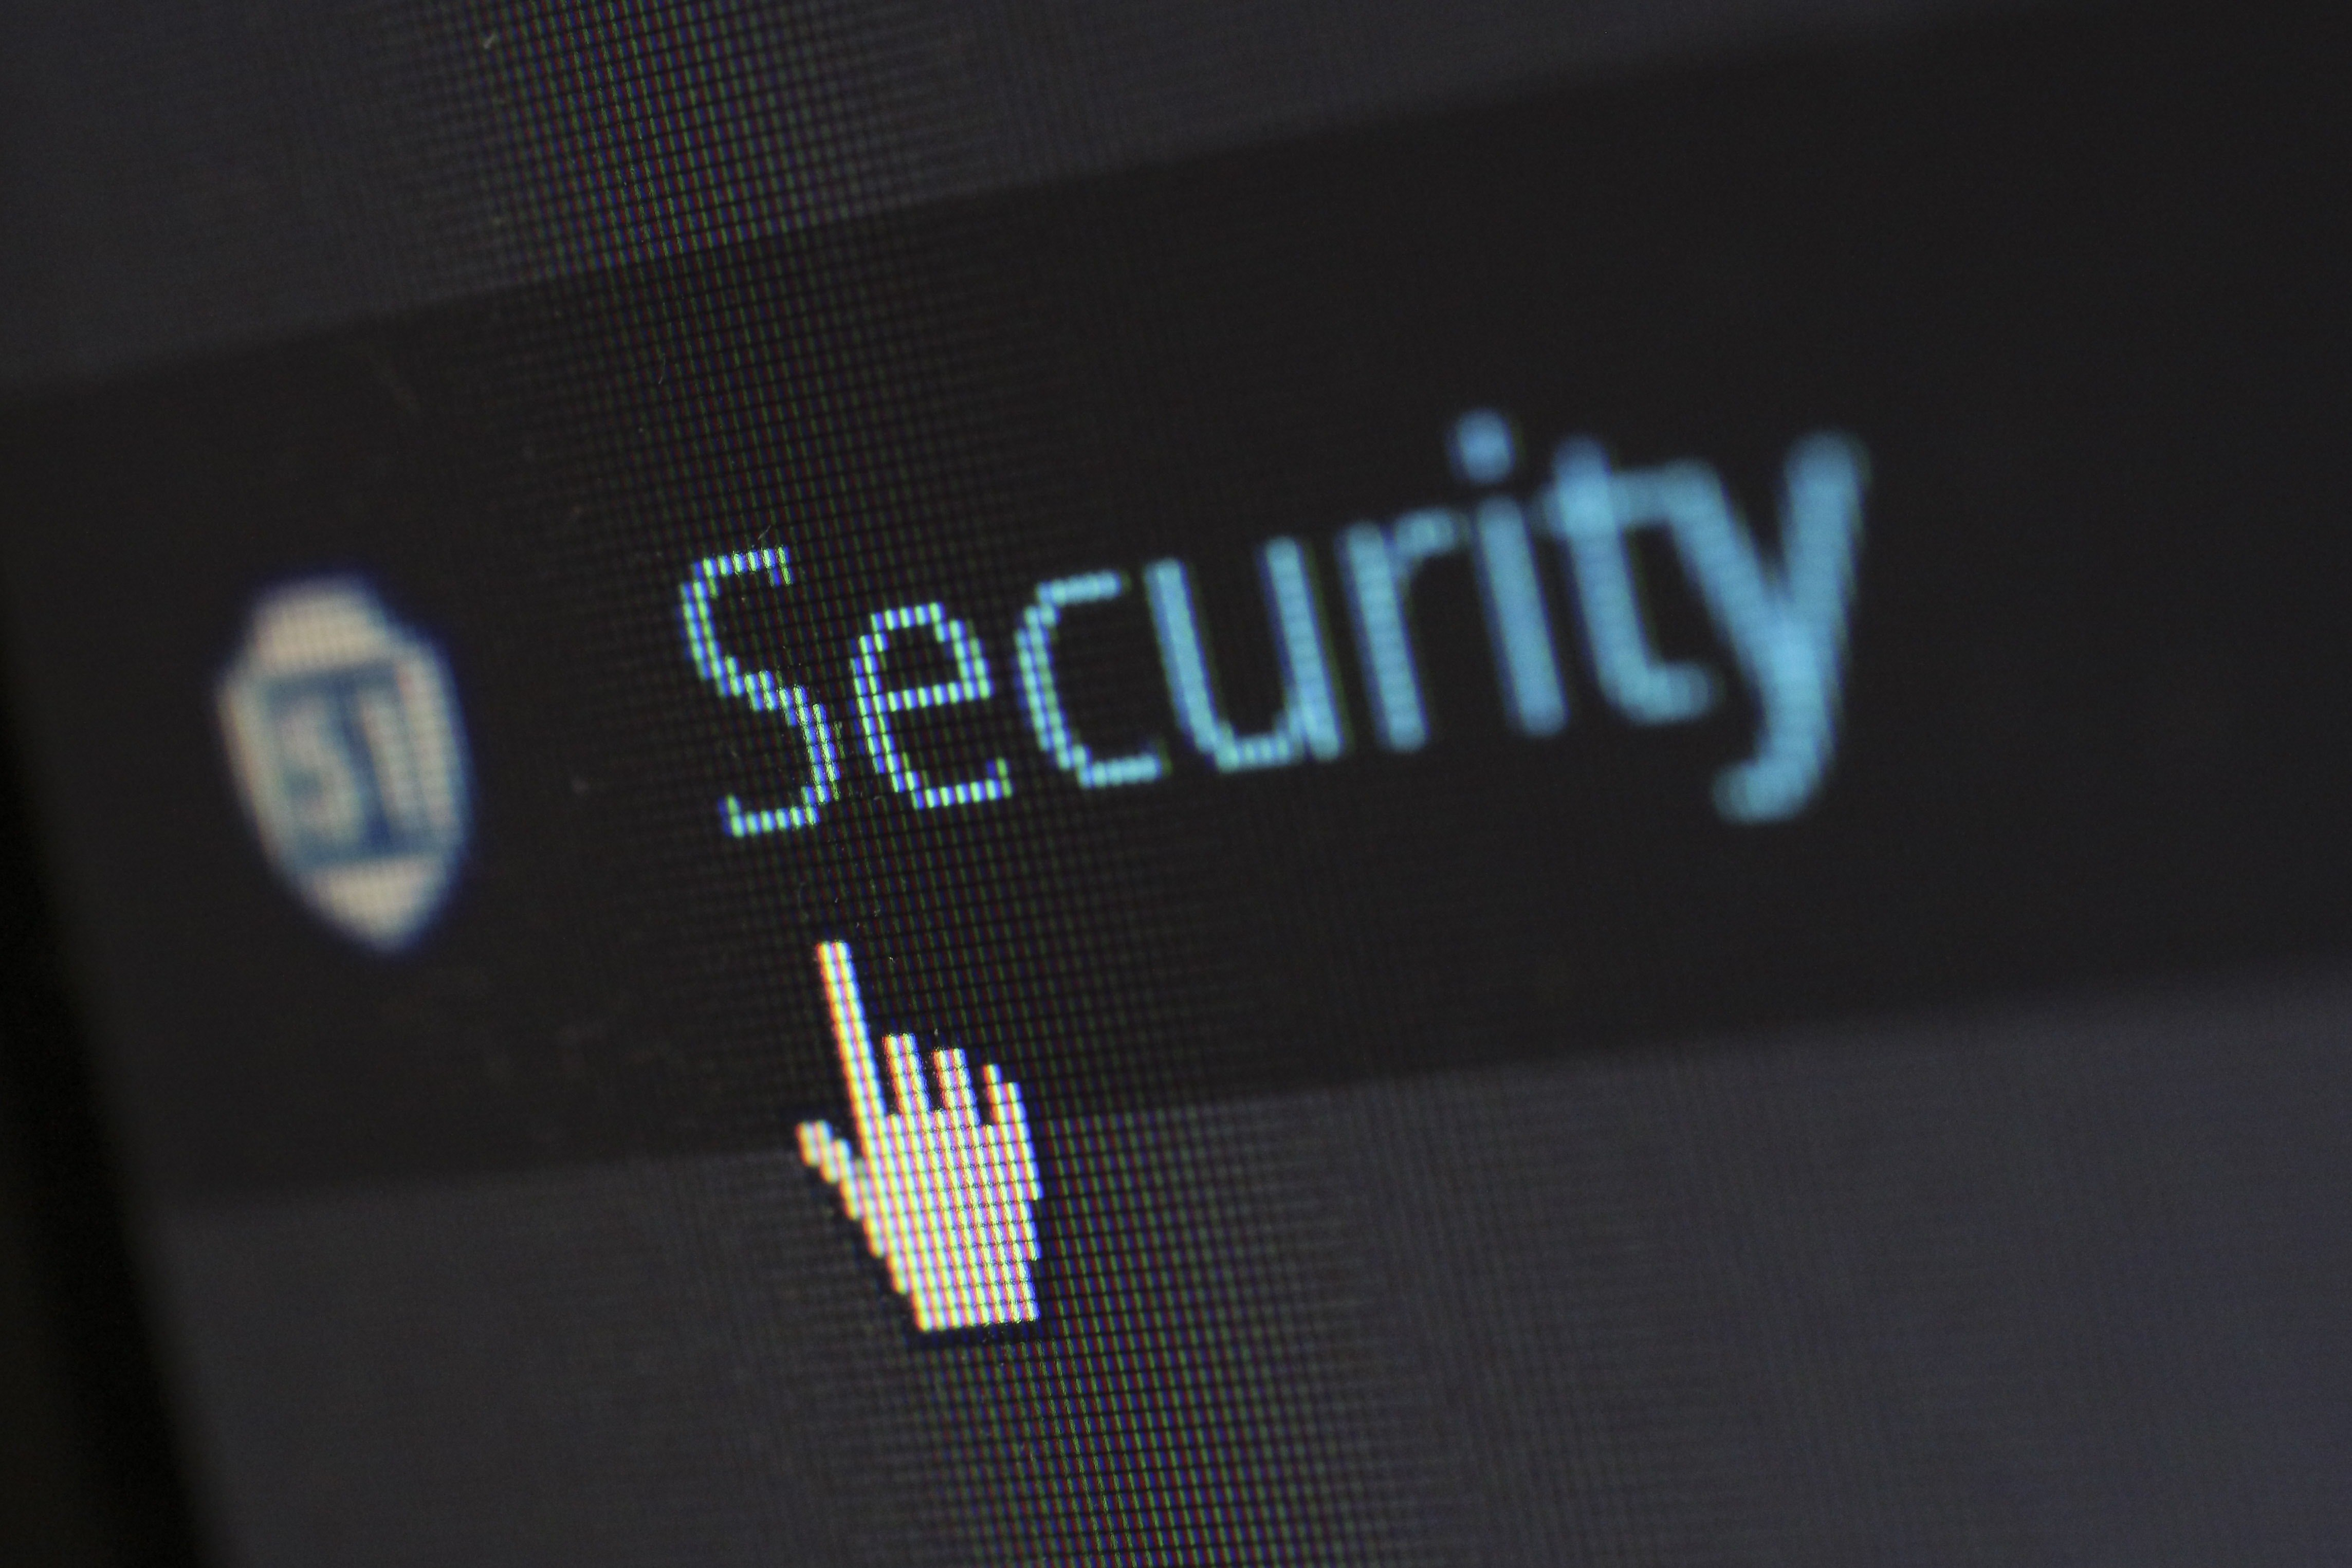 security-protection-anti-virus-software-60504.jpeg